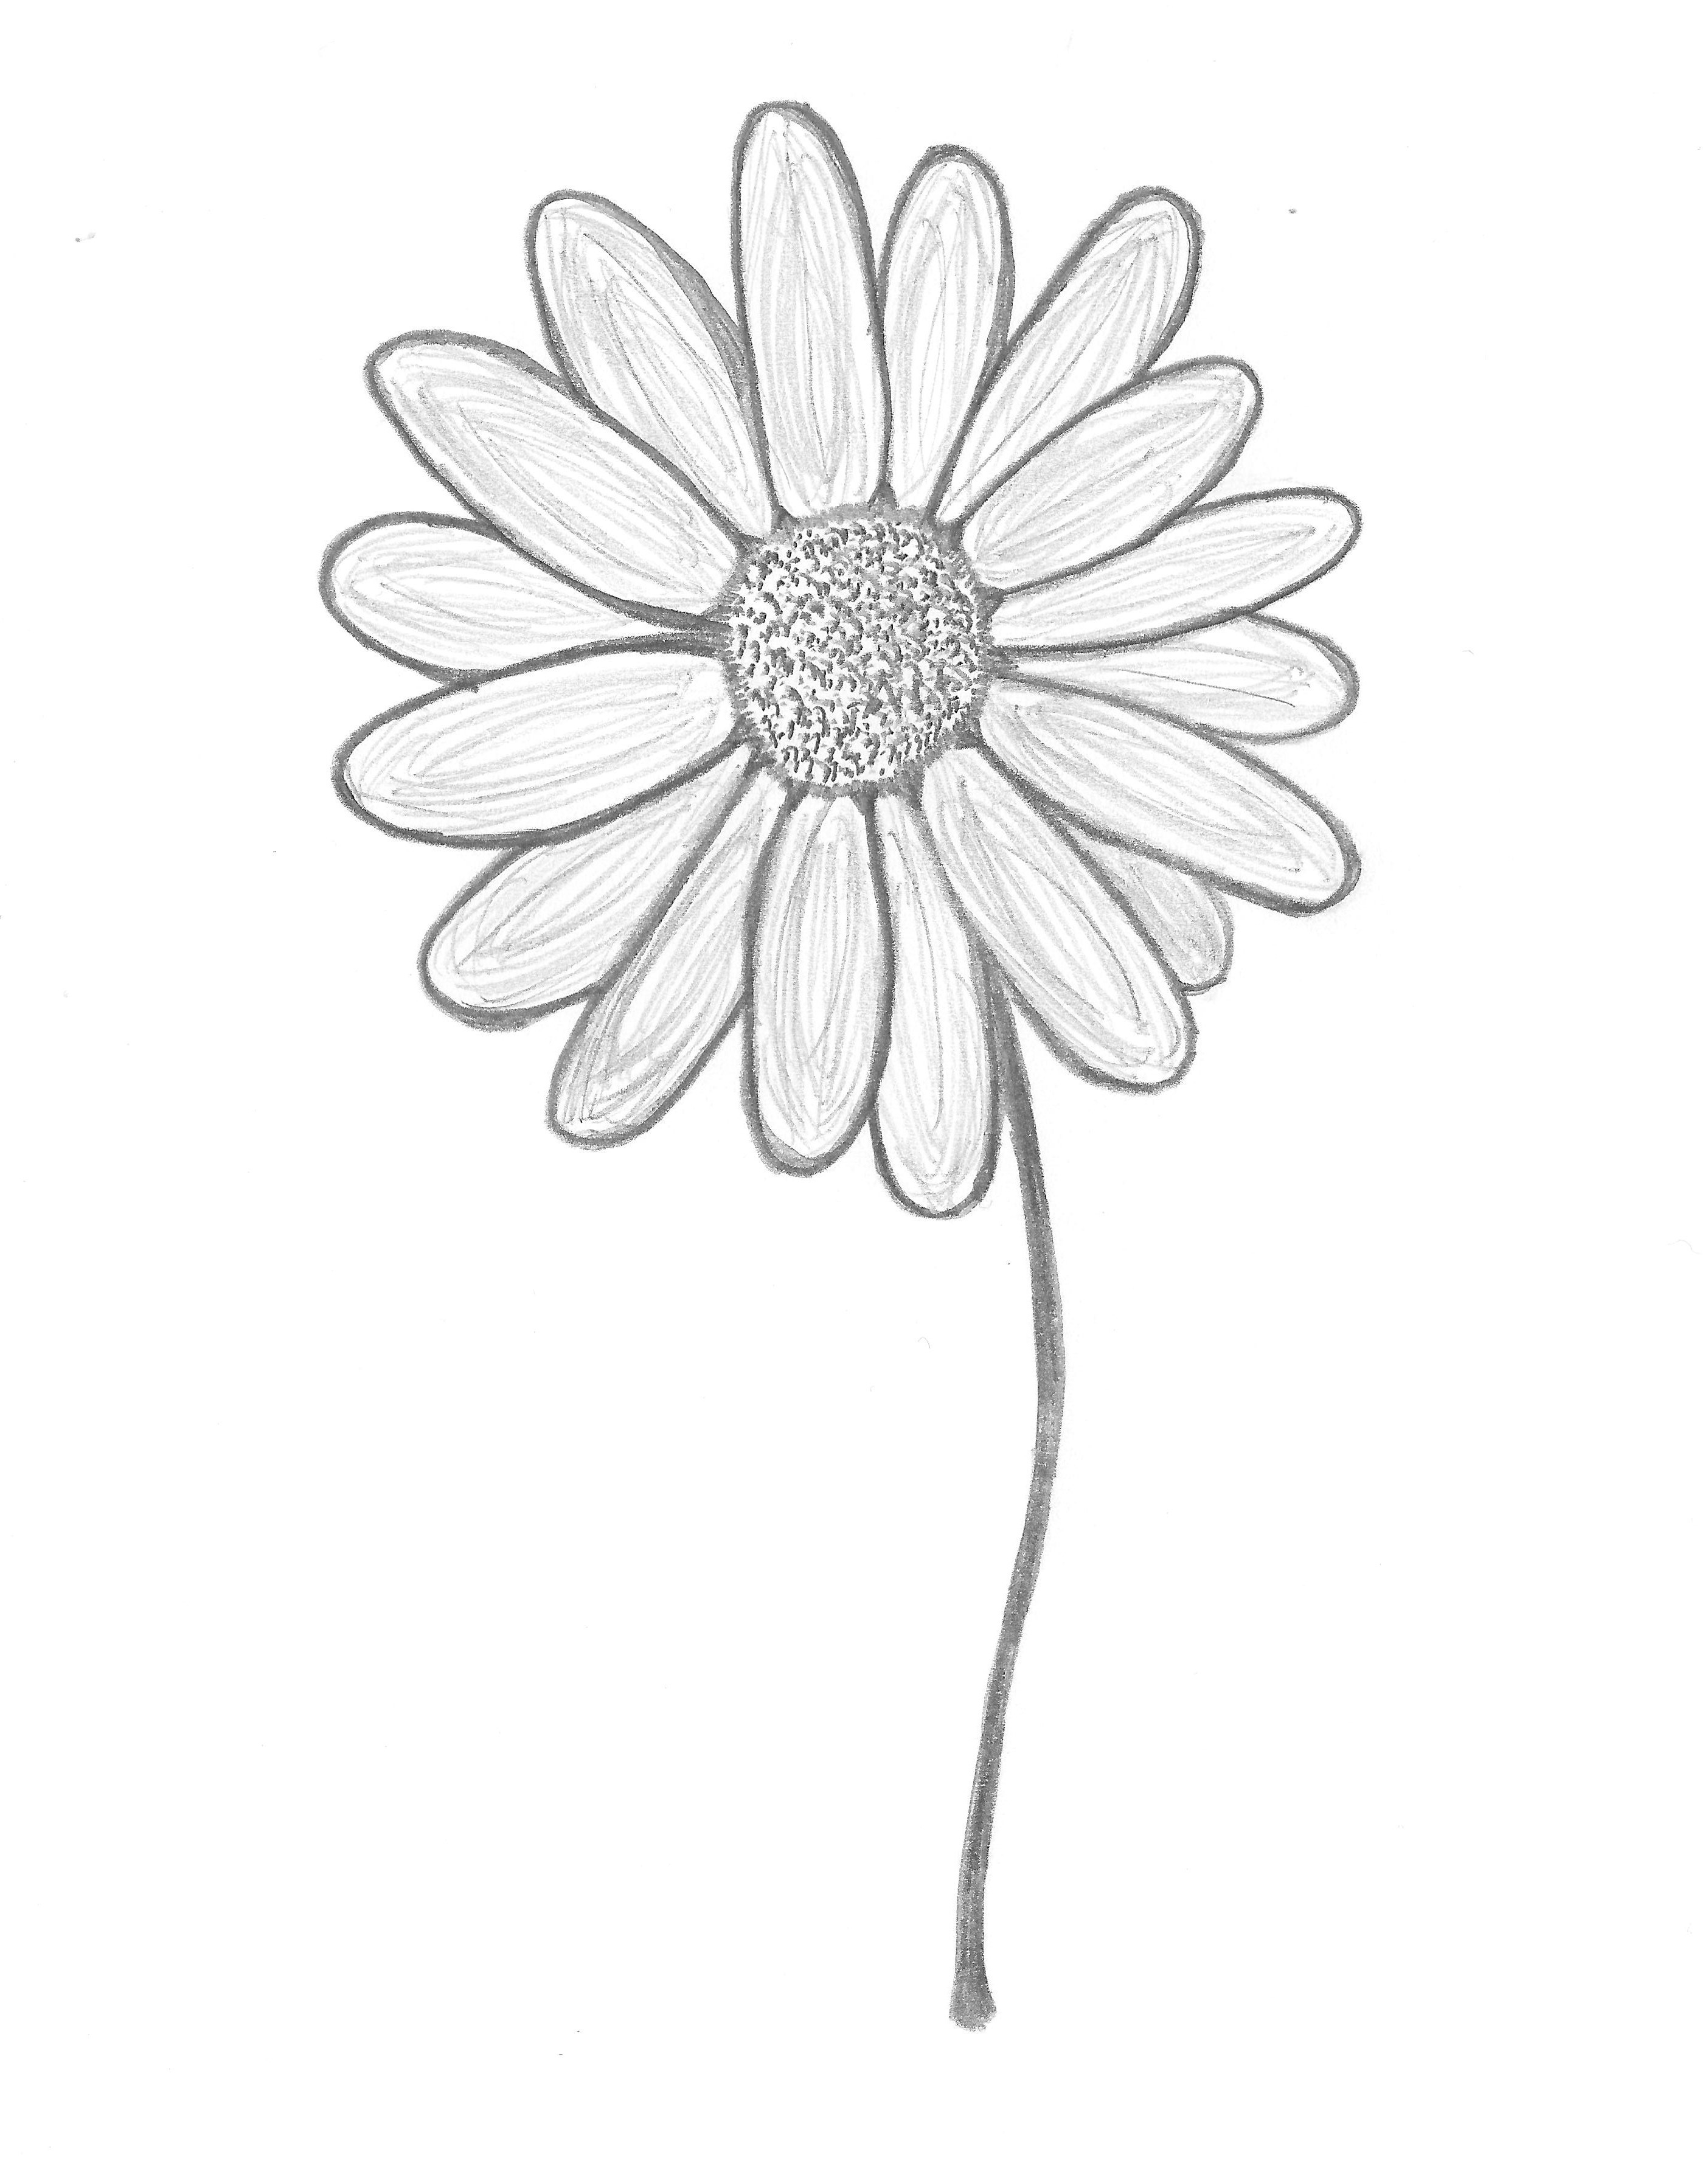 Daisy Drawing Tumblr At Getdrawings Com Free For Personal Use